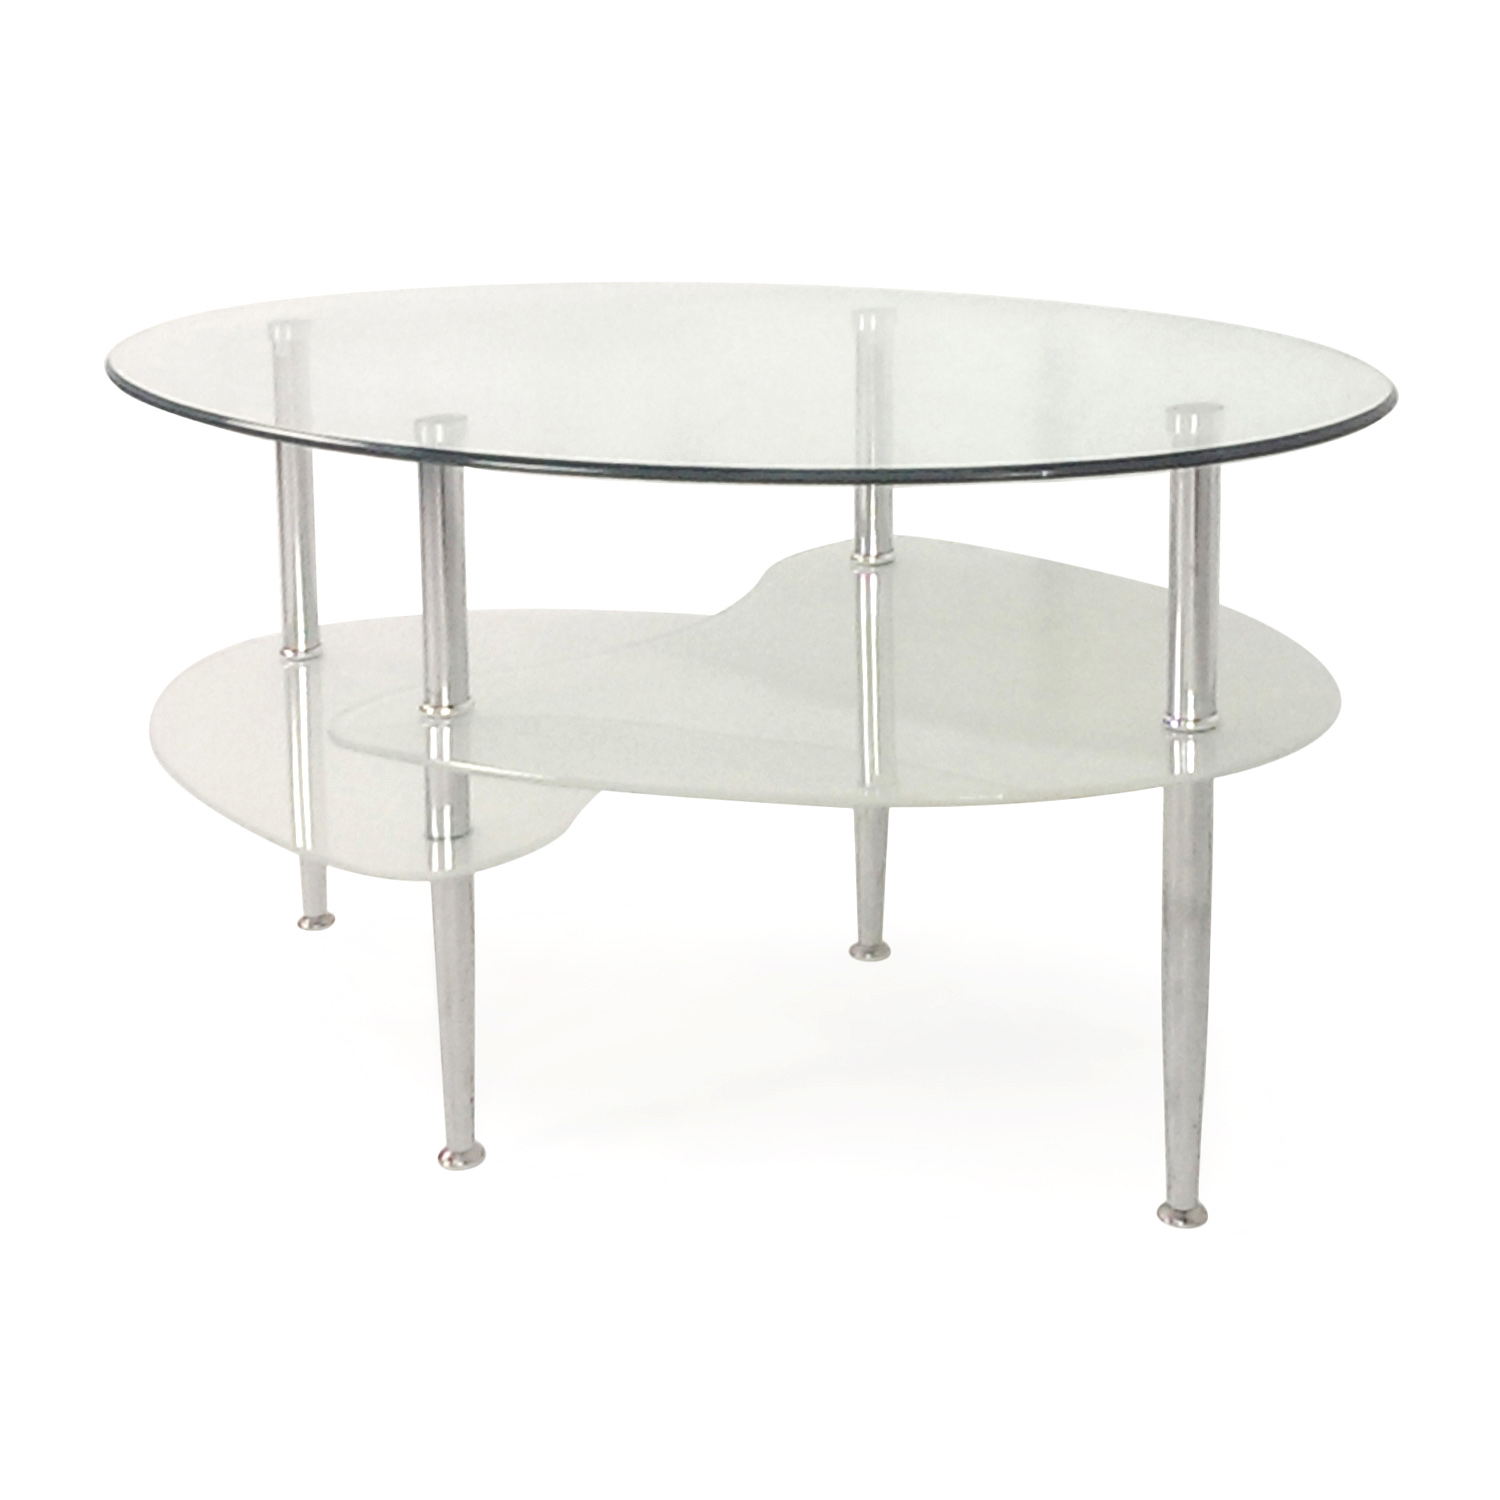 54 off overstock modern glass coffee table tables Used glass coffee table